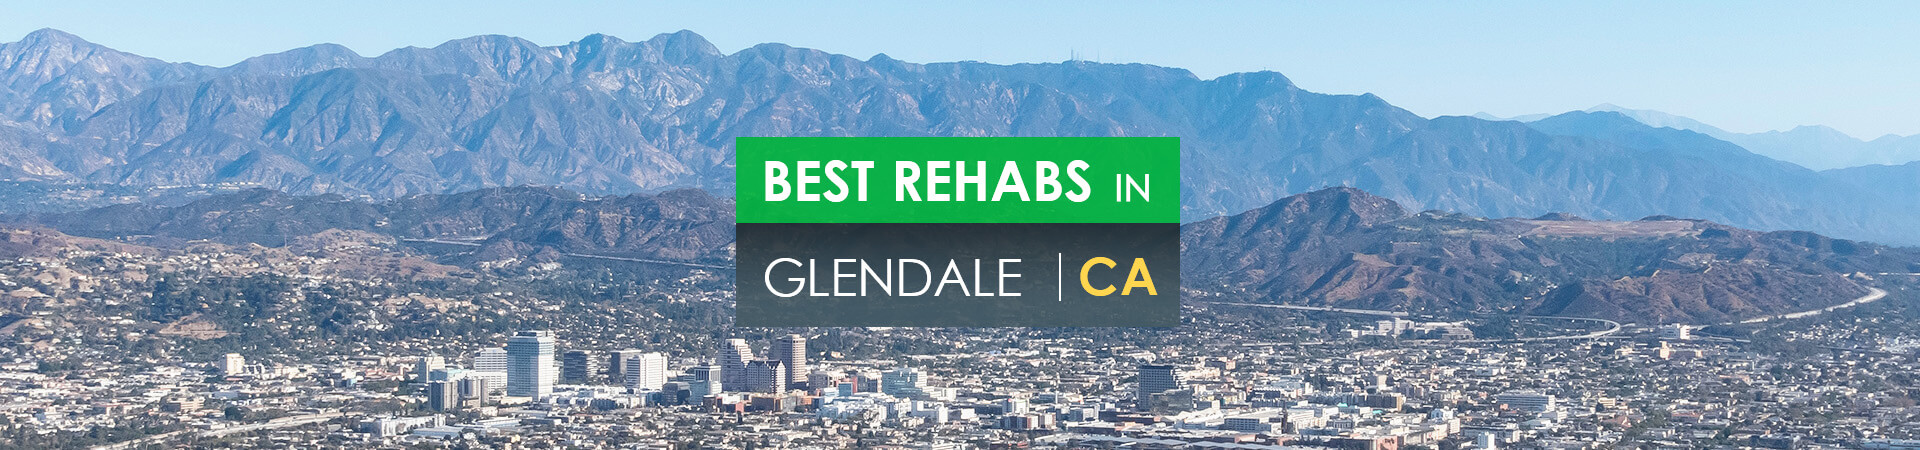 Best rehabs in Glendale, CA